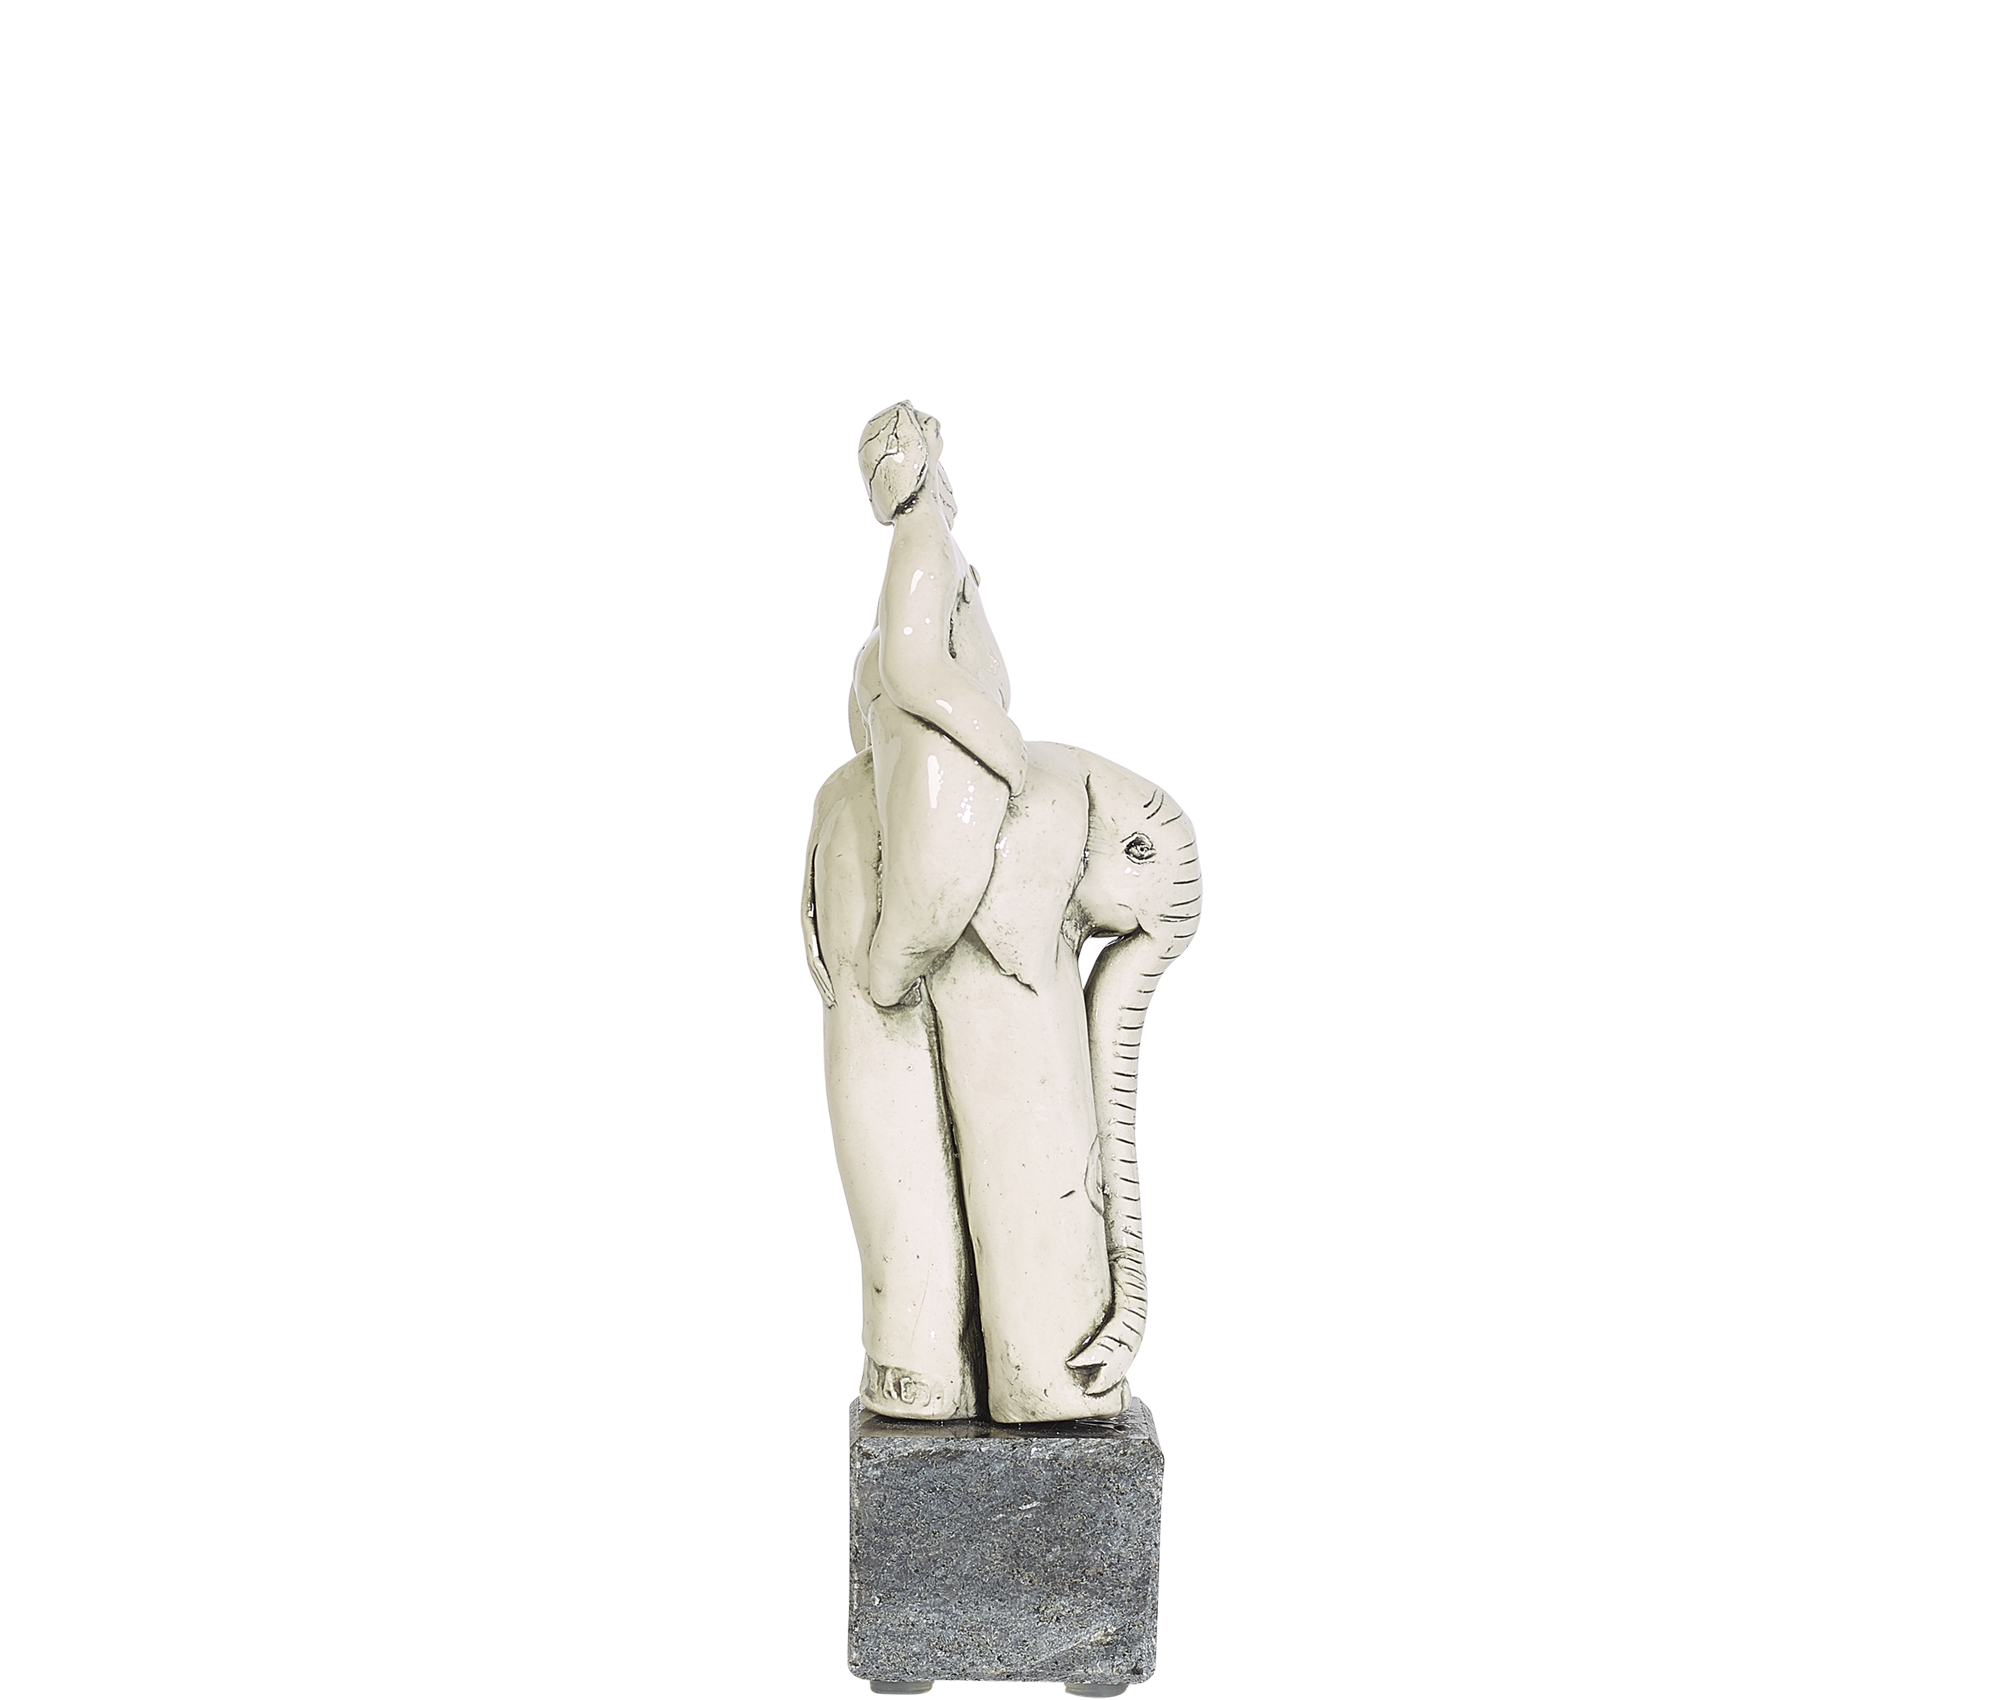 products/lady-on-ellie-statuette-home-decor-16615431209060.png